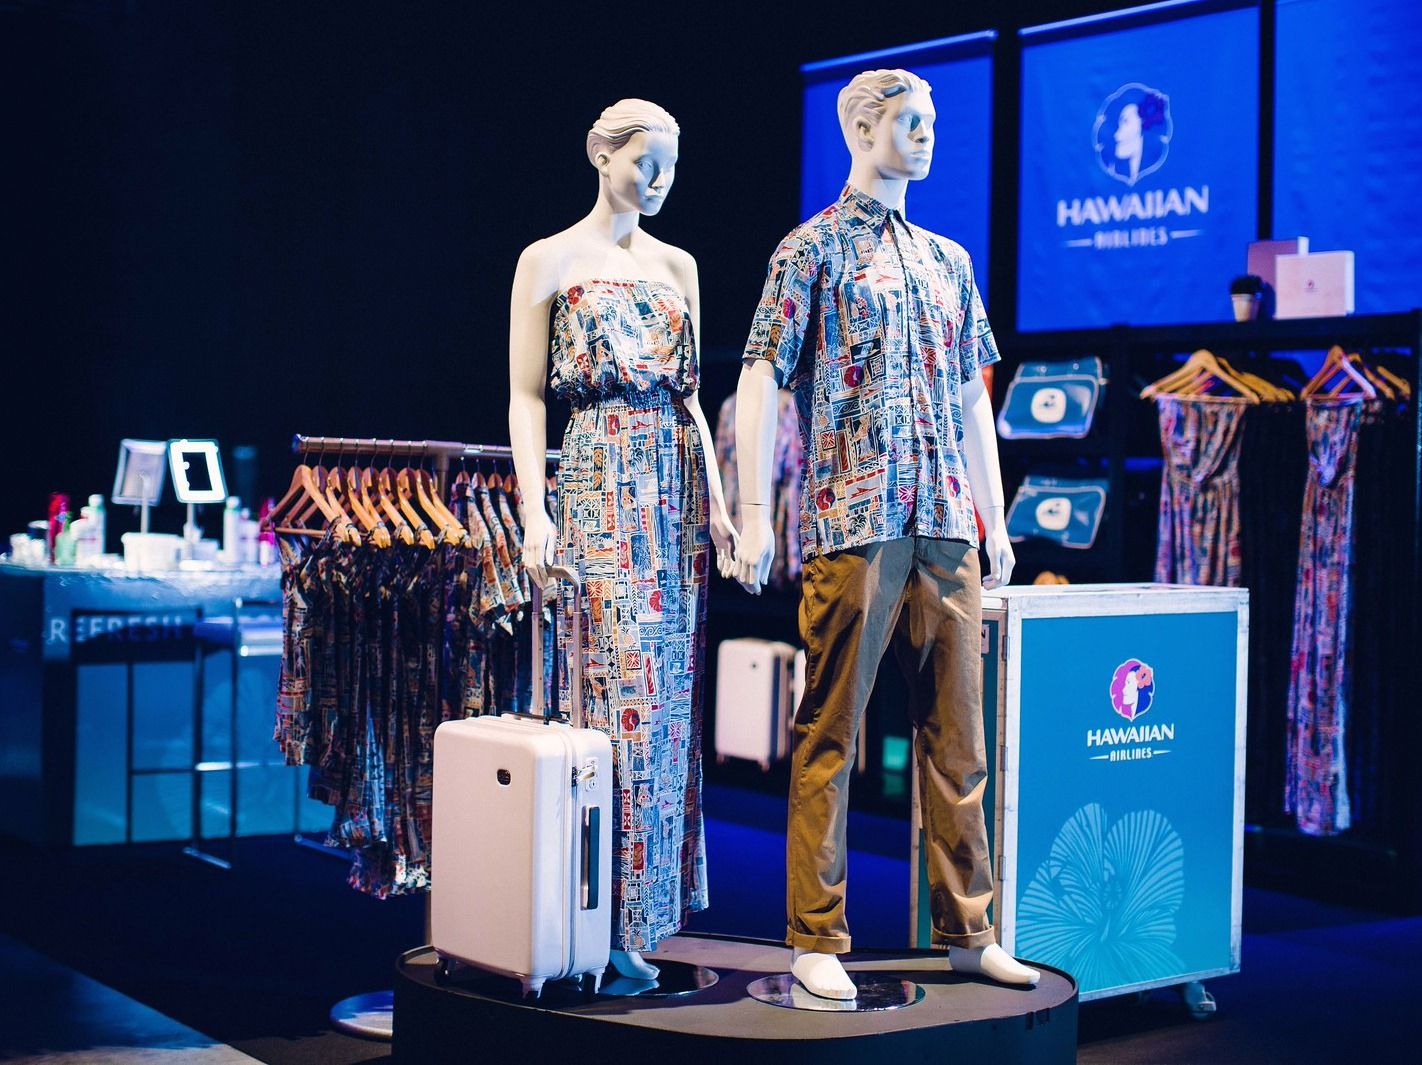 Mannequins dressed in the Heritage collection featuring designs by Tori Richards.